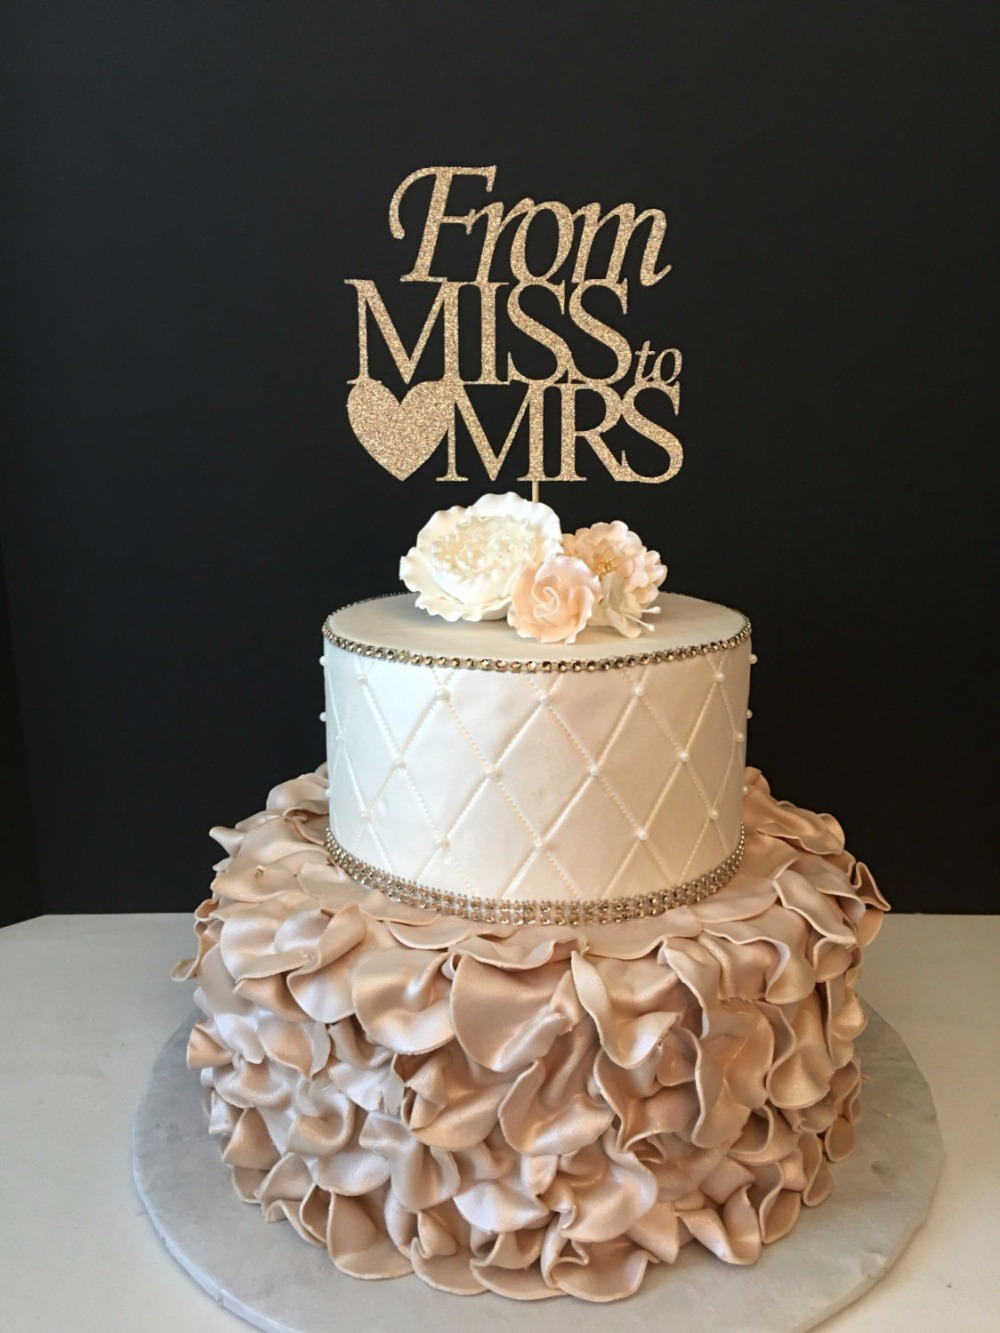 bridal shower cake toppers aliexpress buy from miss to mrs cake topper 2063